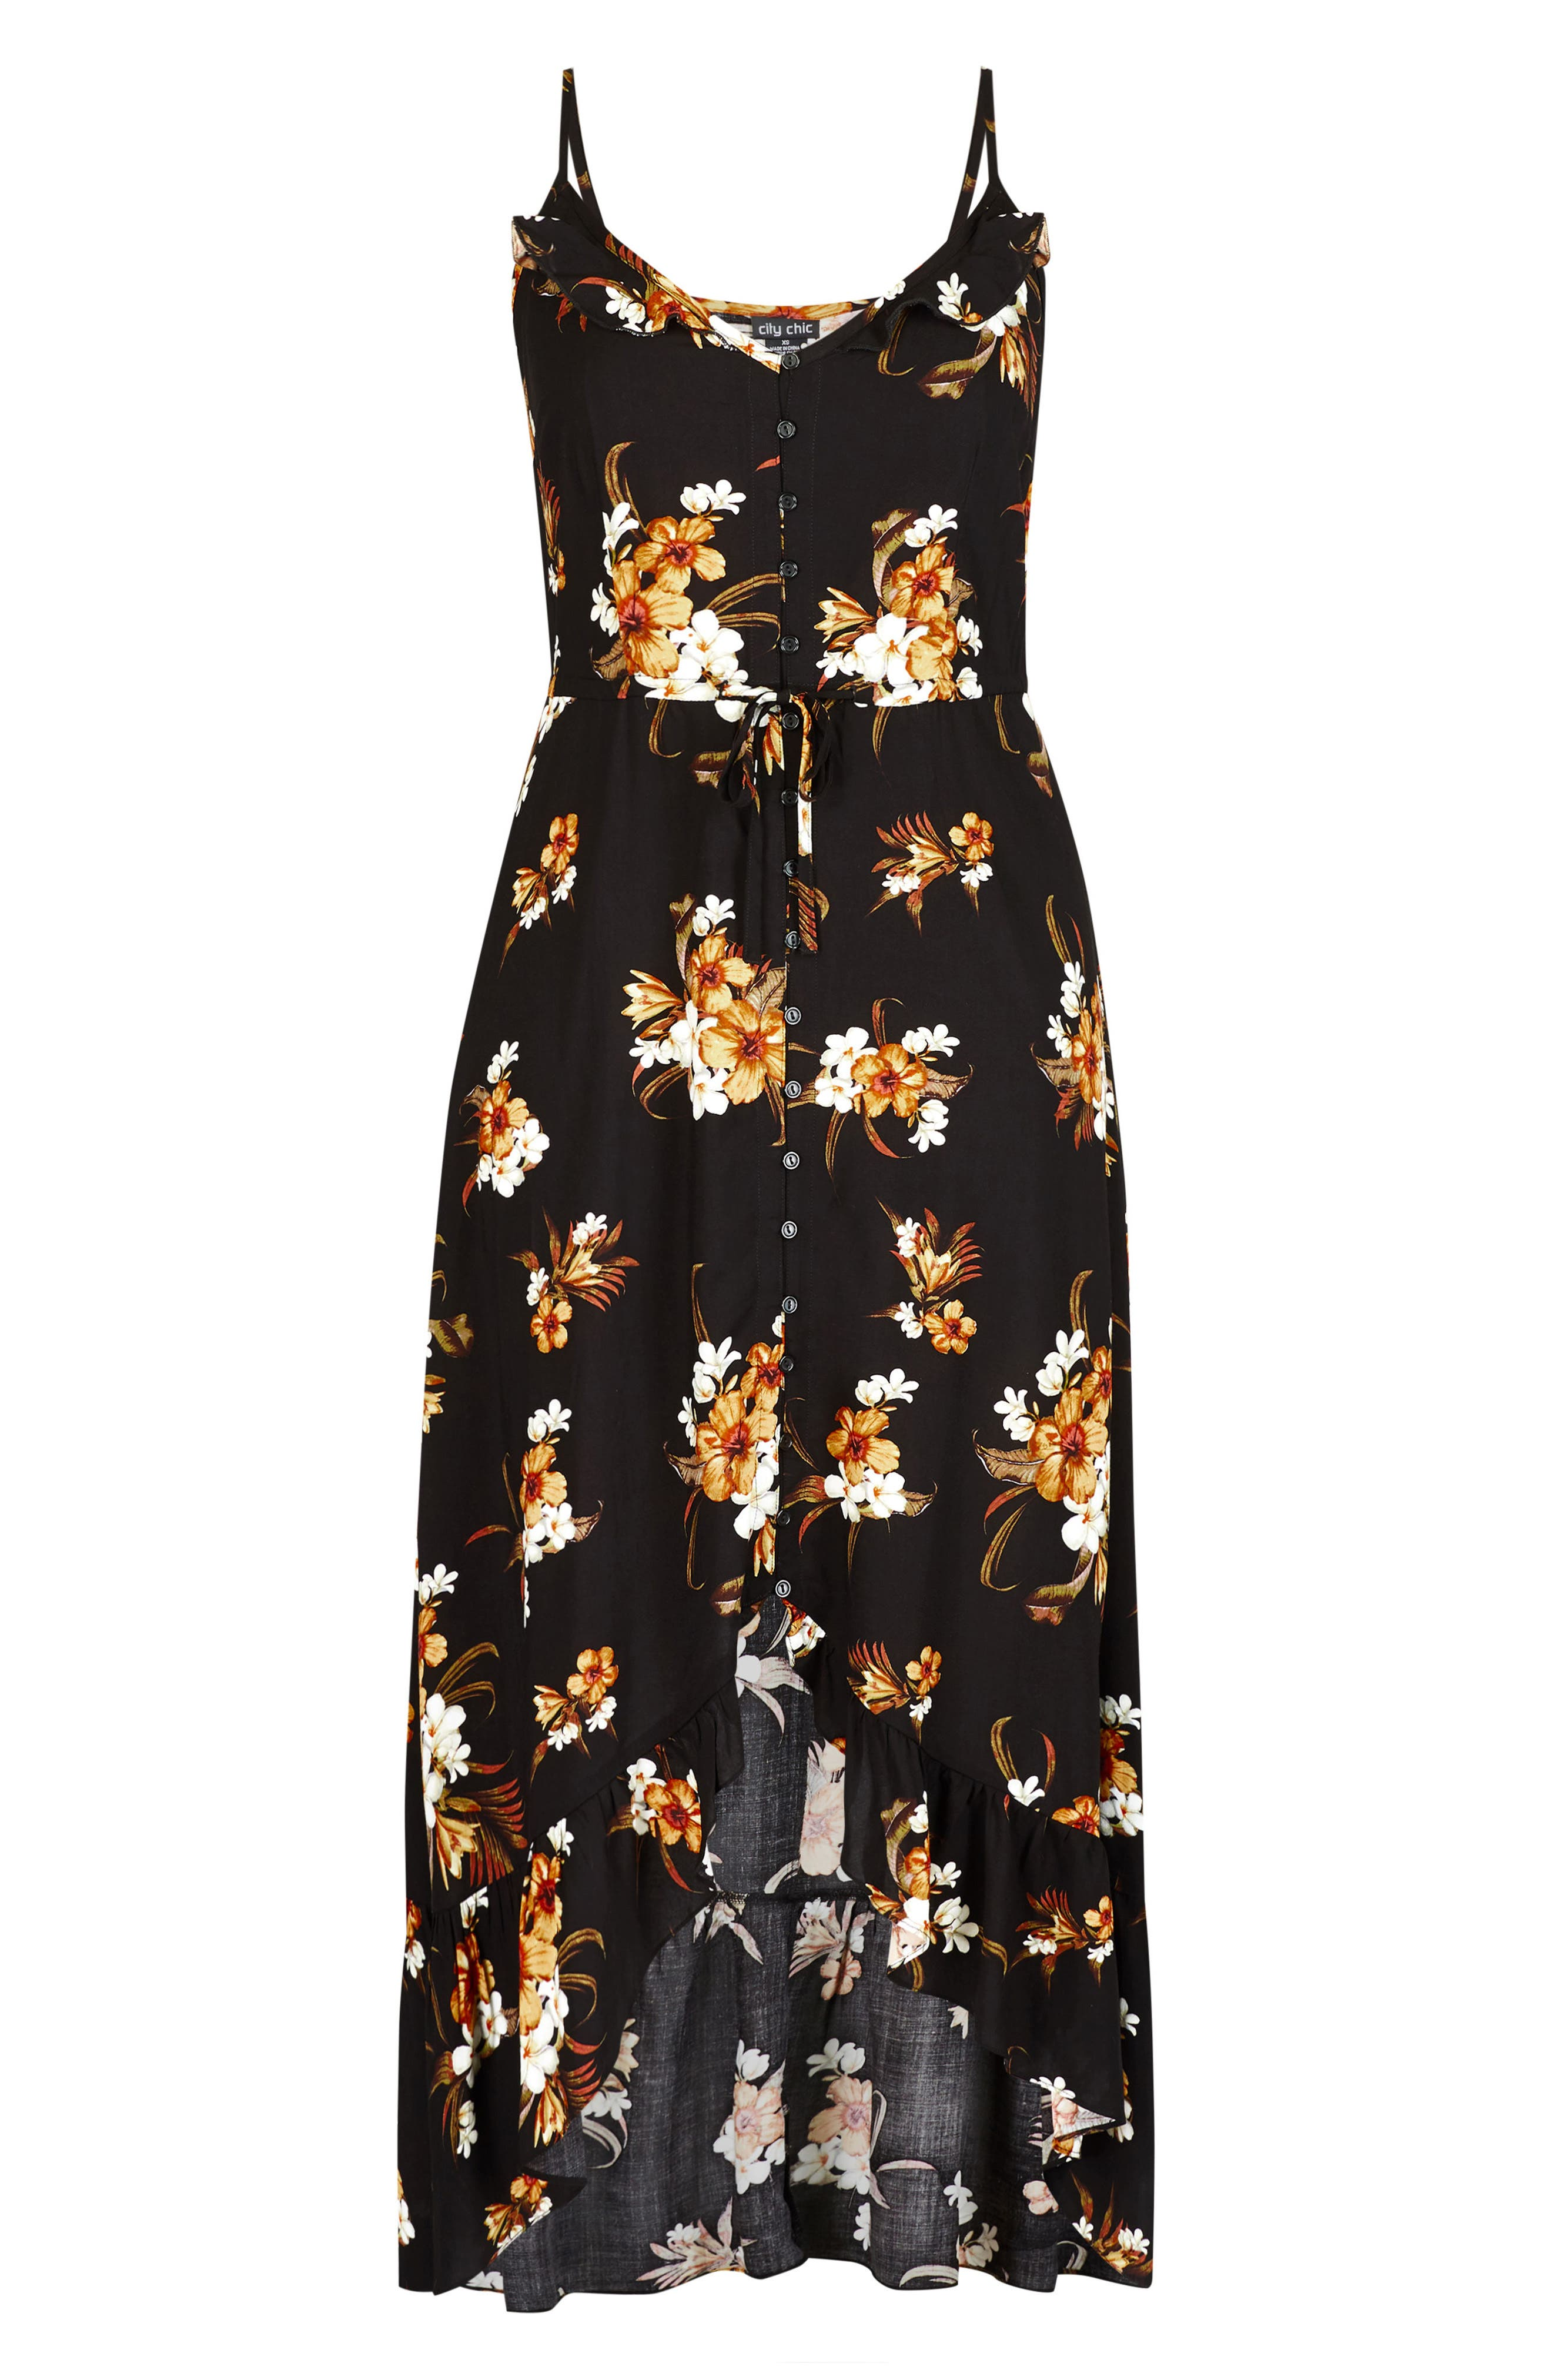 CITY CHIC, Aruba Floral Maxi Dress, Alternate thumbnail 3, color, BLACK PRINT